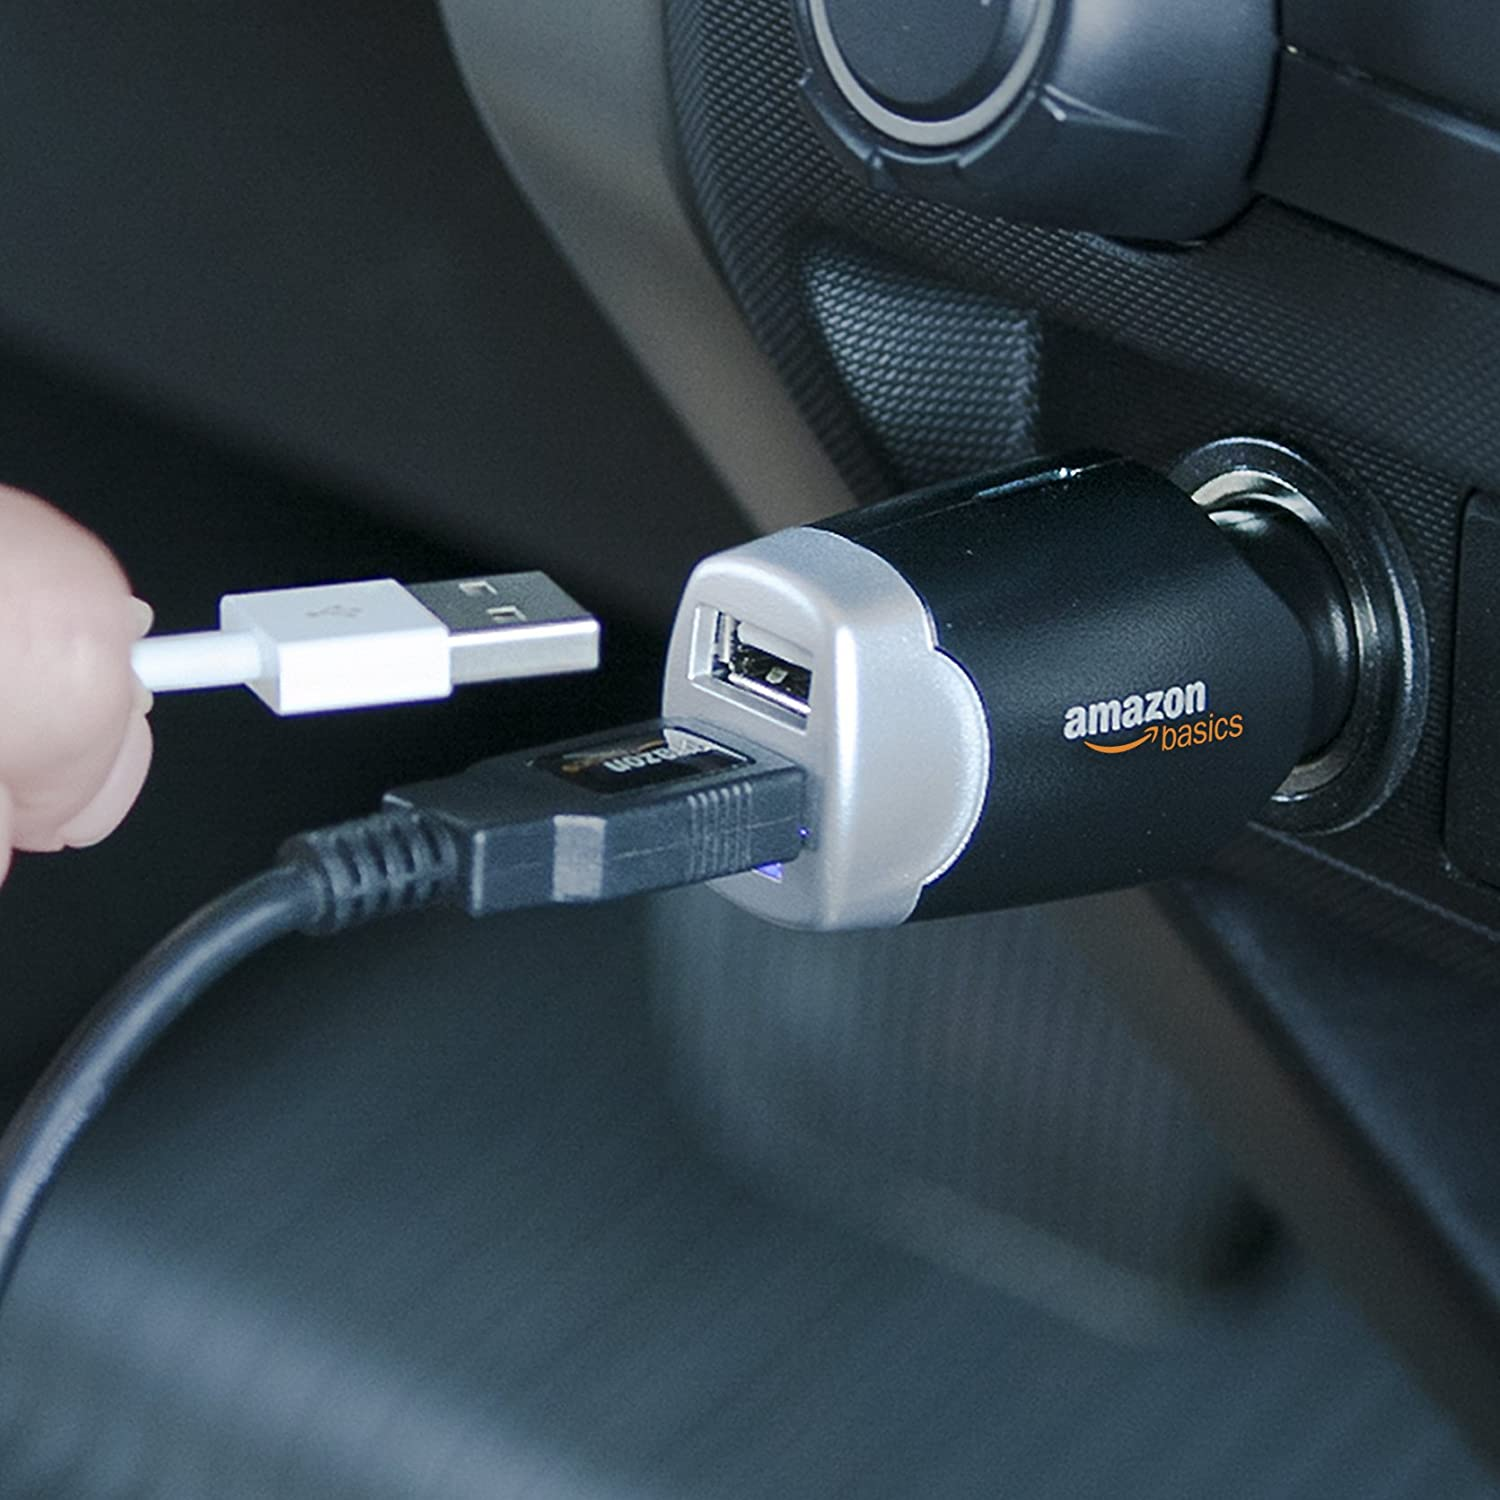 Amazon Basics 4.0 Amp Dual USB Car Charger Price In